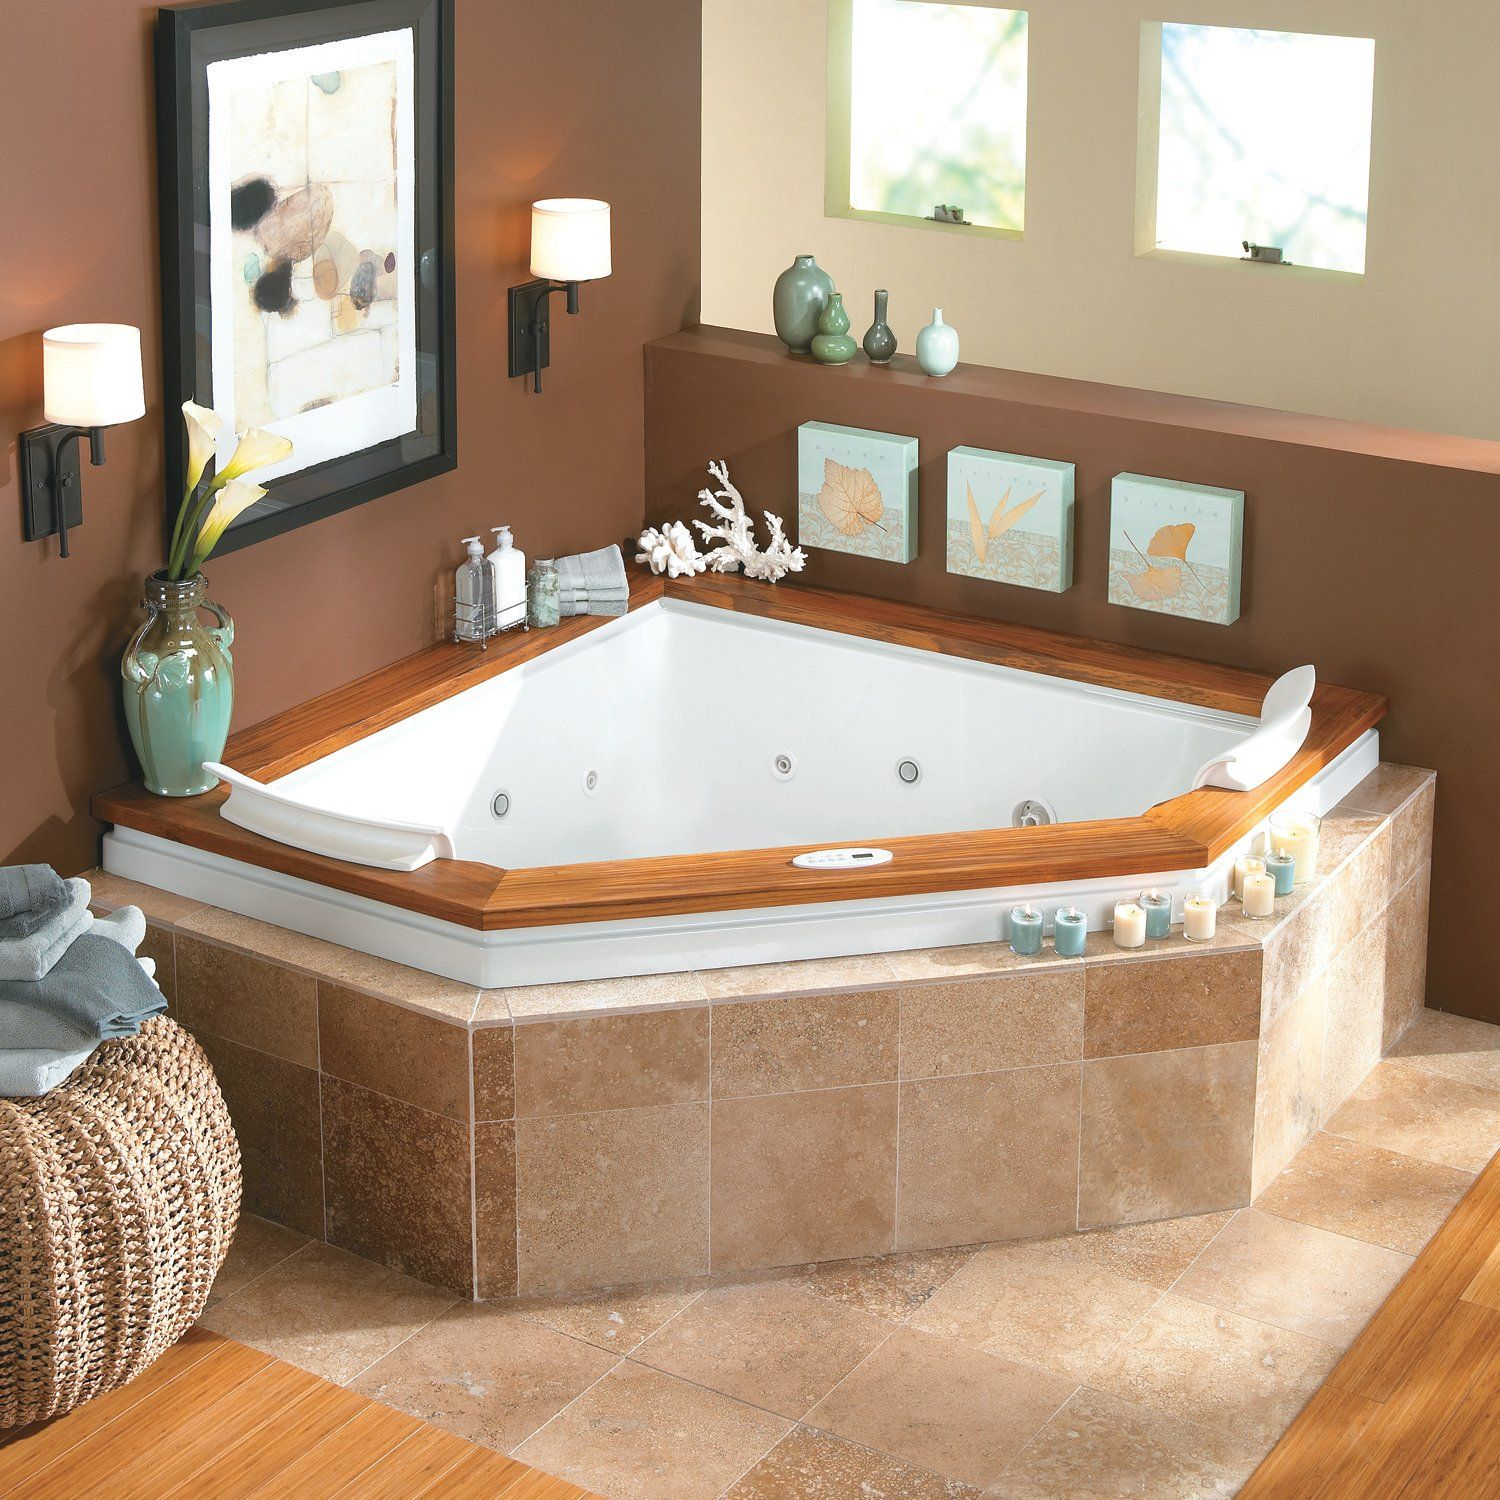 Bathroom Captivating Small Jacuzzi Bathtubs With Jets In Corner Space Also Brown Wall Paint Plus